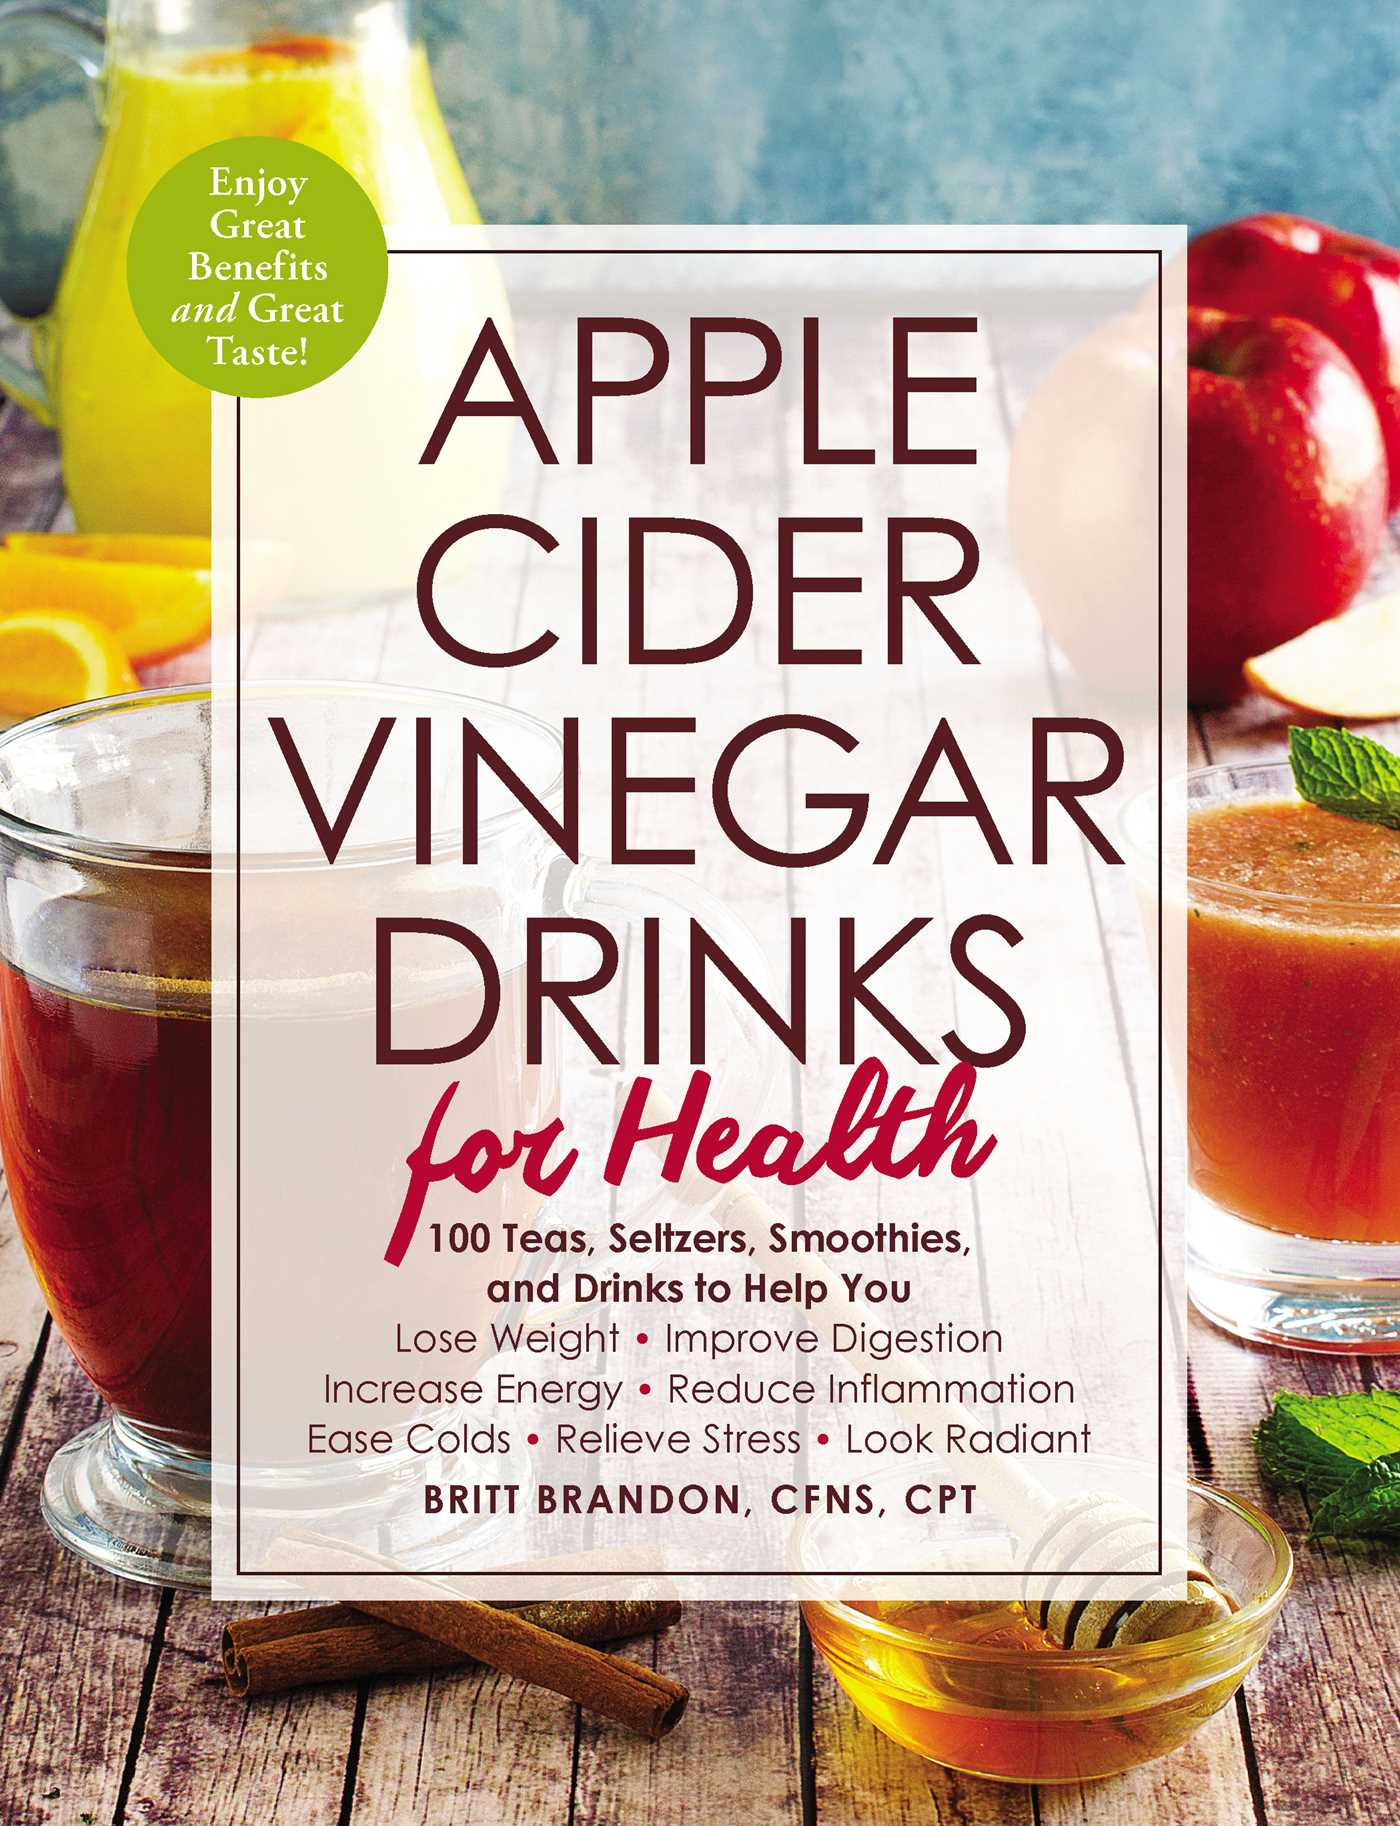 Apple cider vinegar drinks for health 9781507207574 hr